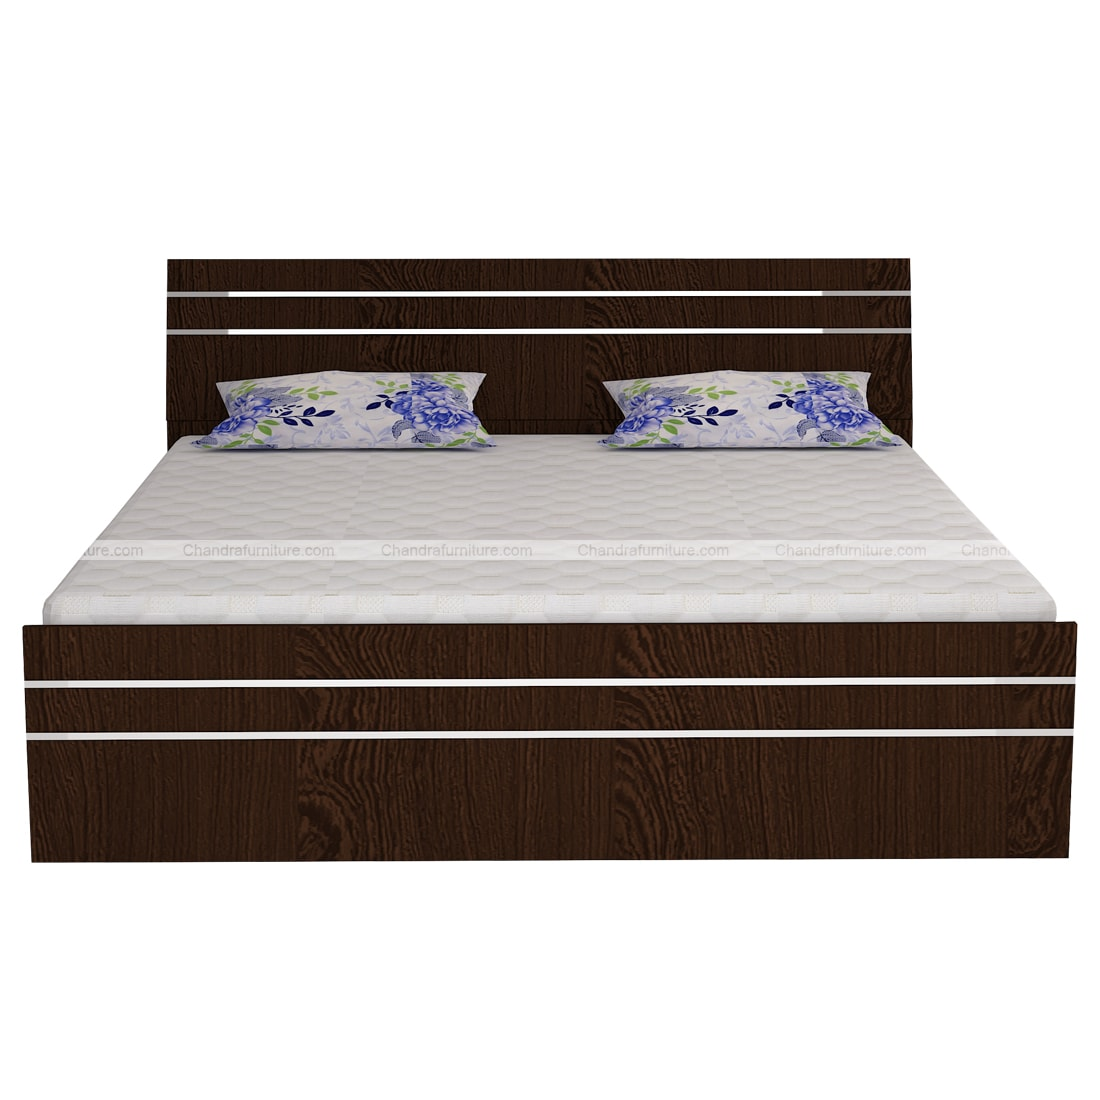 Chandra Furniture King Size Bed -61 ECO (without Box)